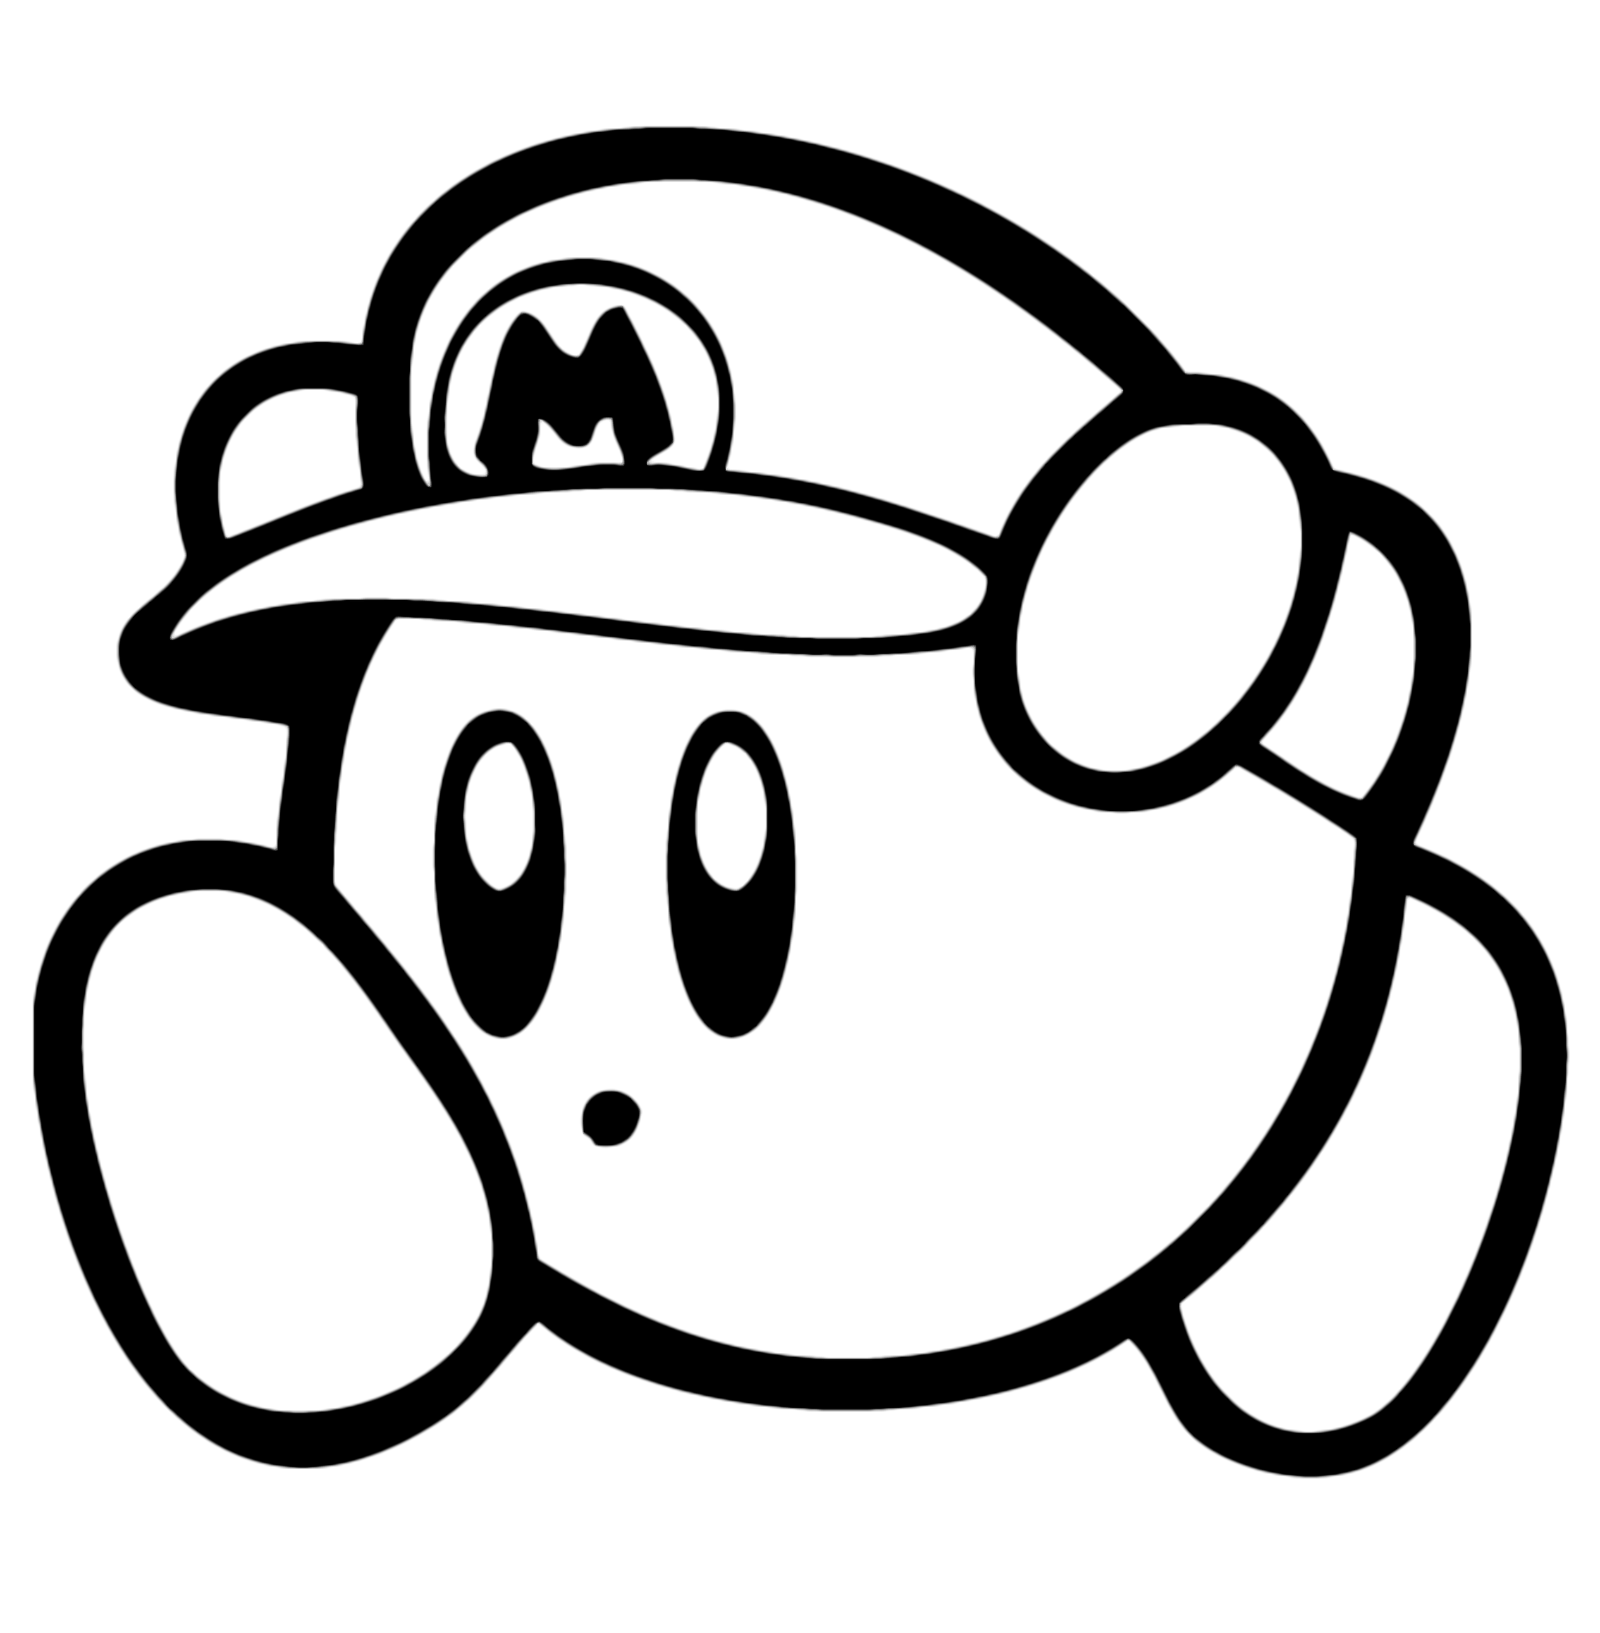 Kirby kirby con il cappello di super mario for Disegni da colorare super mario